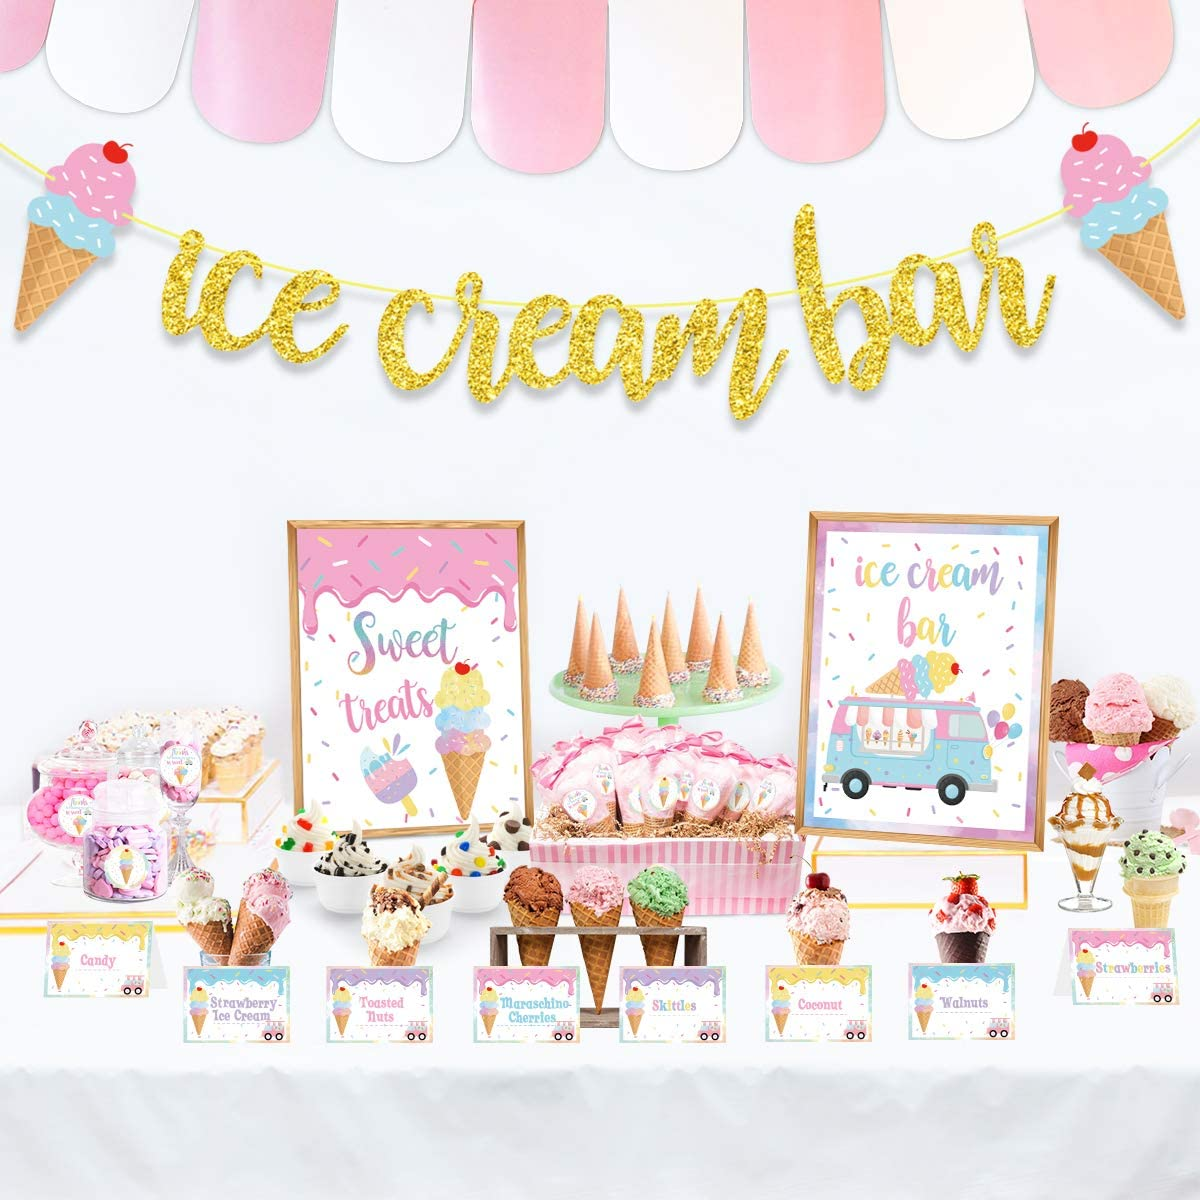 Ice Cream Bar Decorations Kit,Gold Glitter Ice Cream Bar Banner,Ice Cream Bar Sign Toppings Labels Tent Cards Cup Tag Sticker for Ice Cream Theme Party, Summer Party Supplies, Baby Shower Decorations